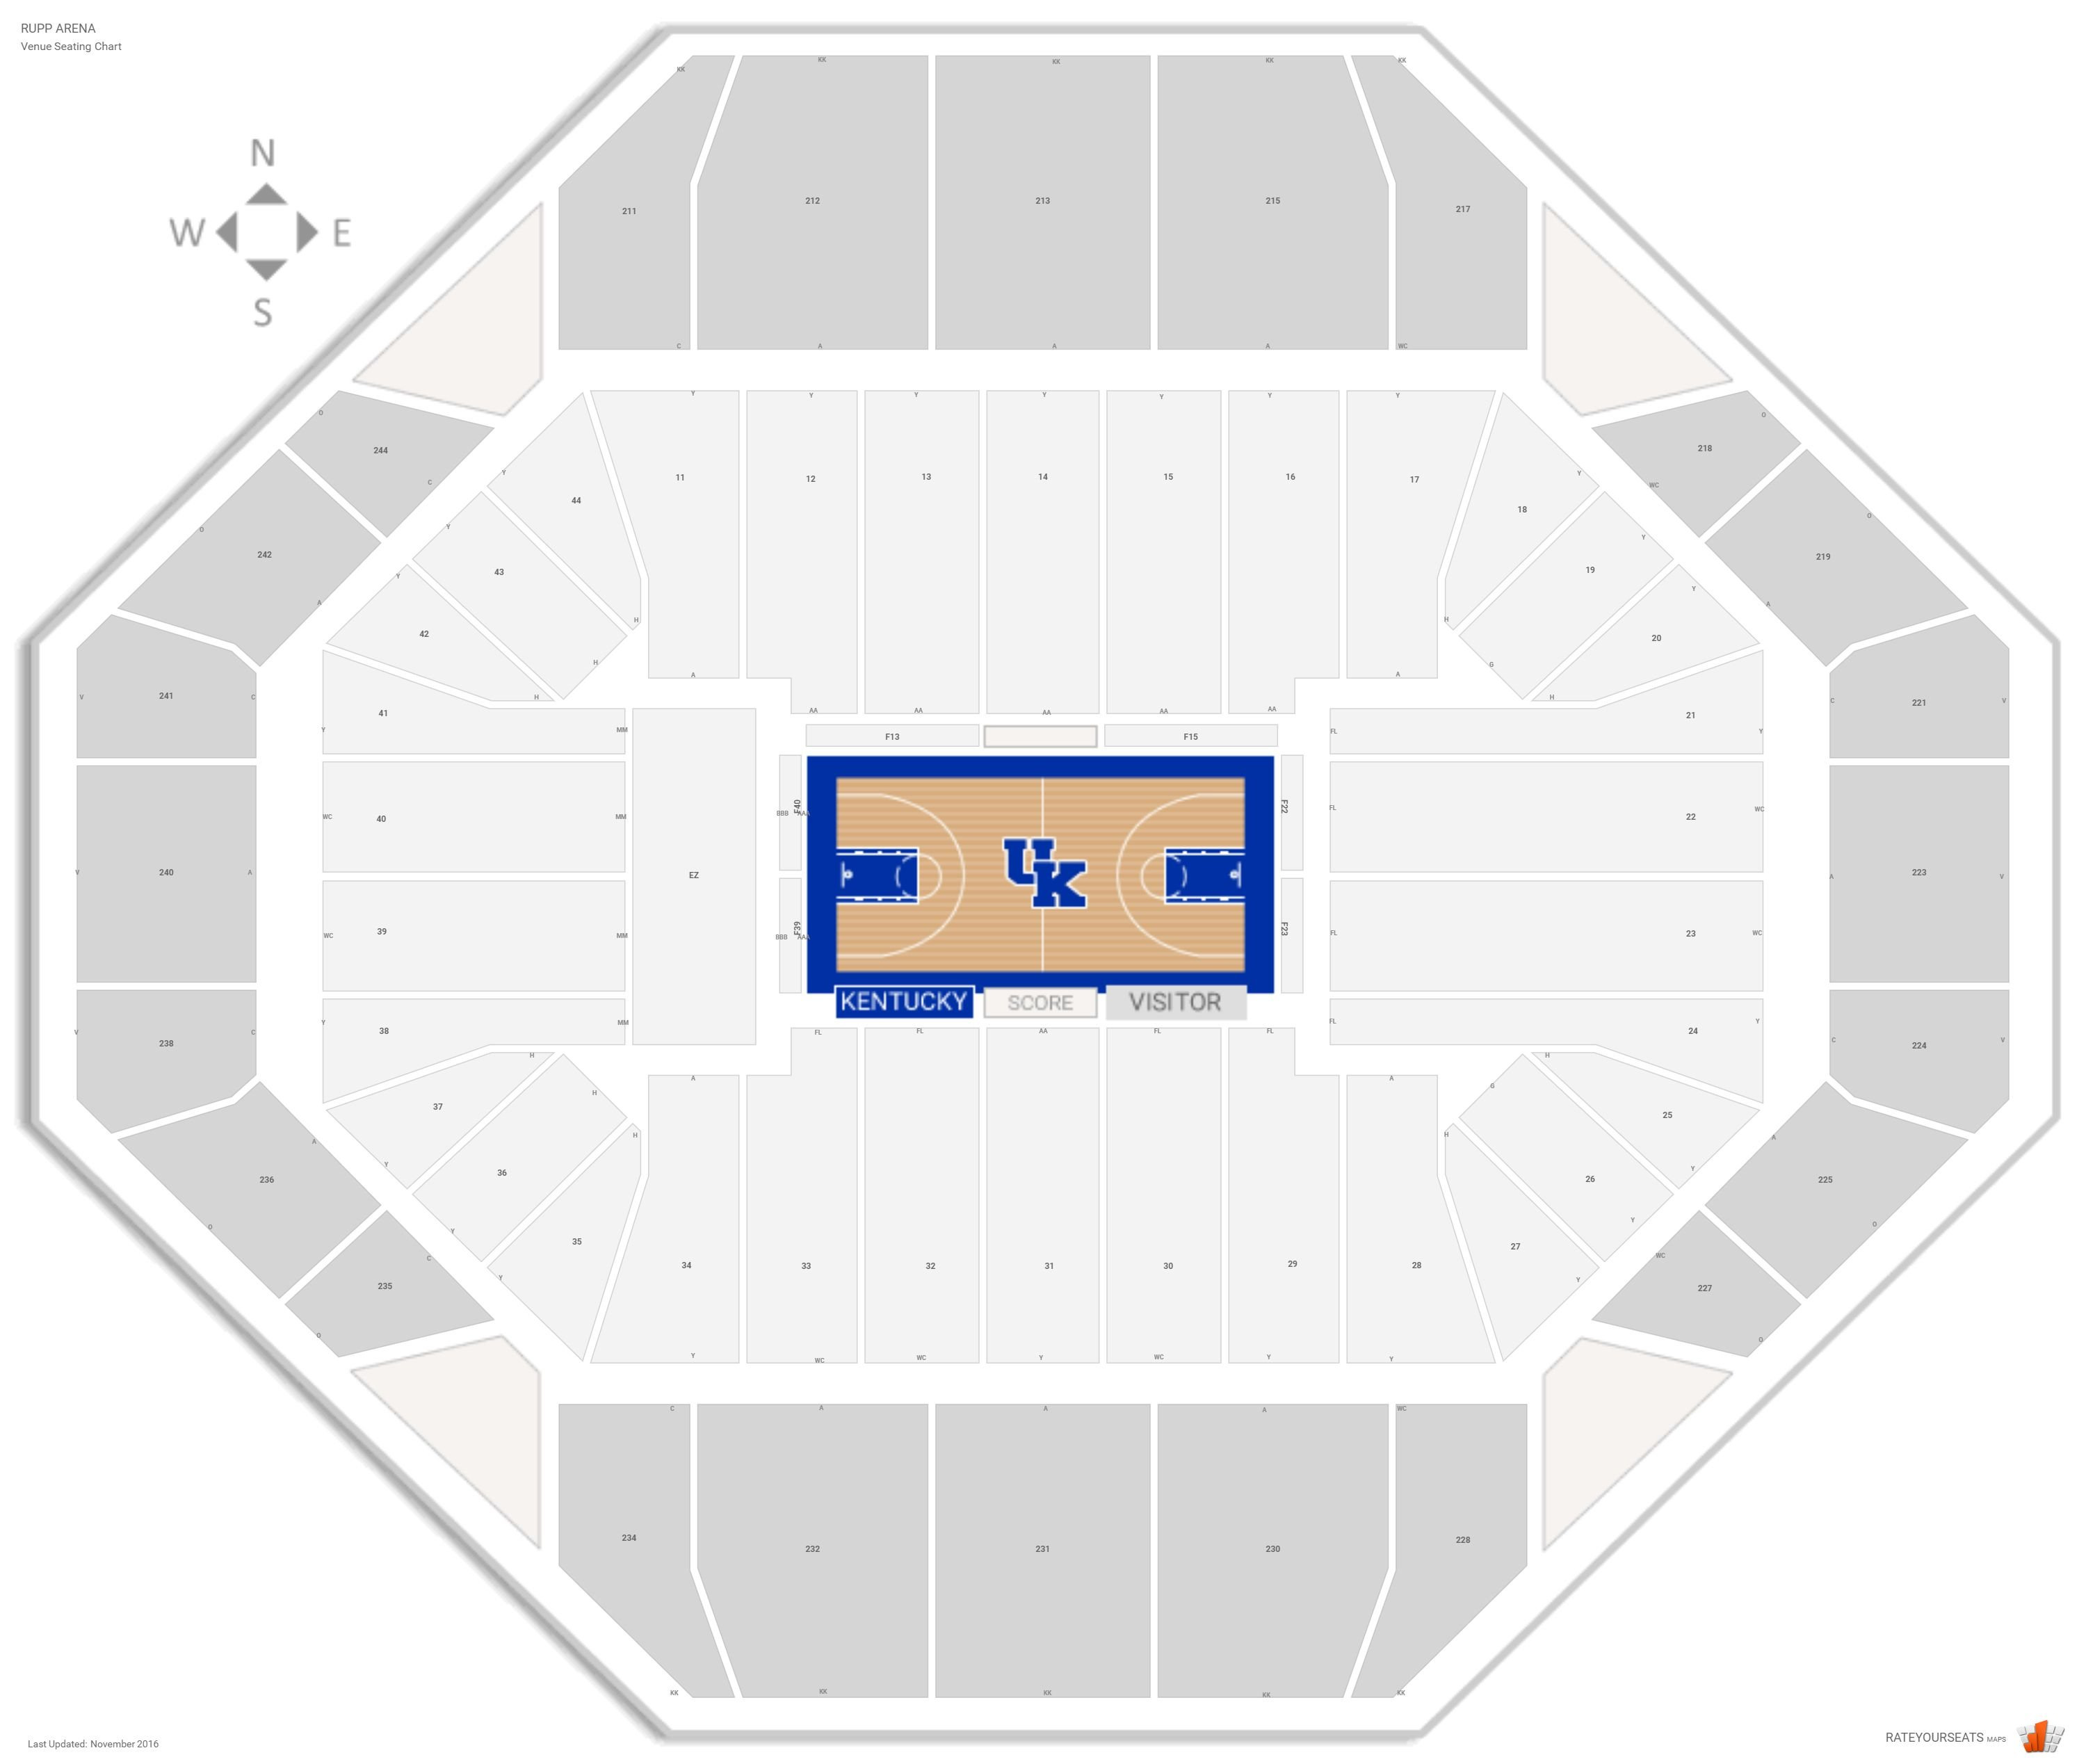 Rupp Arena Seating Chart With Row Numbers